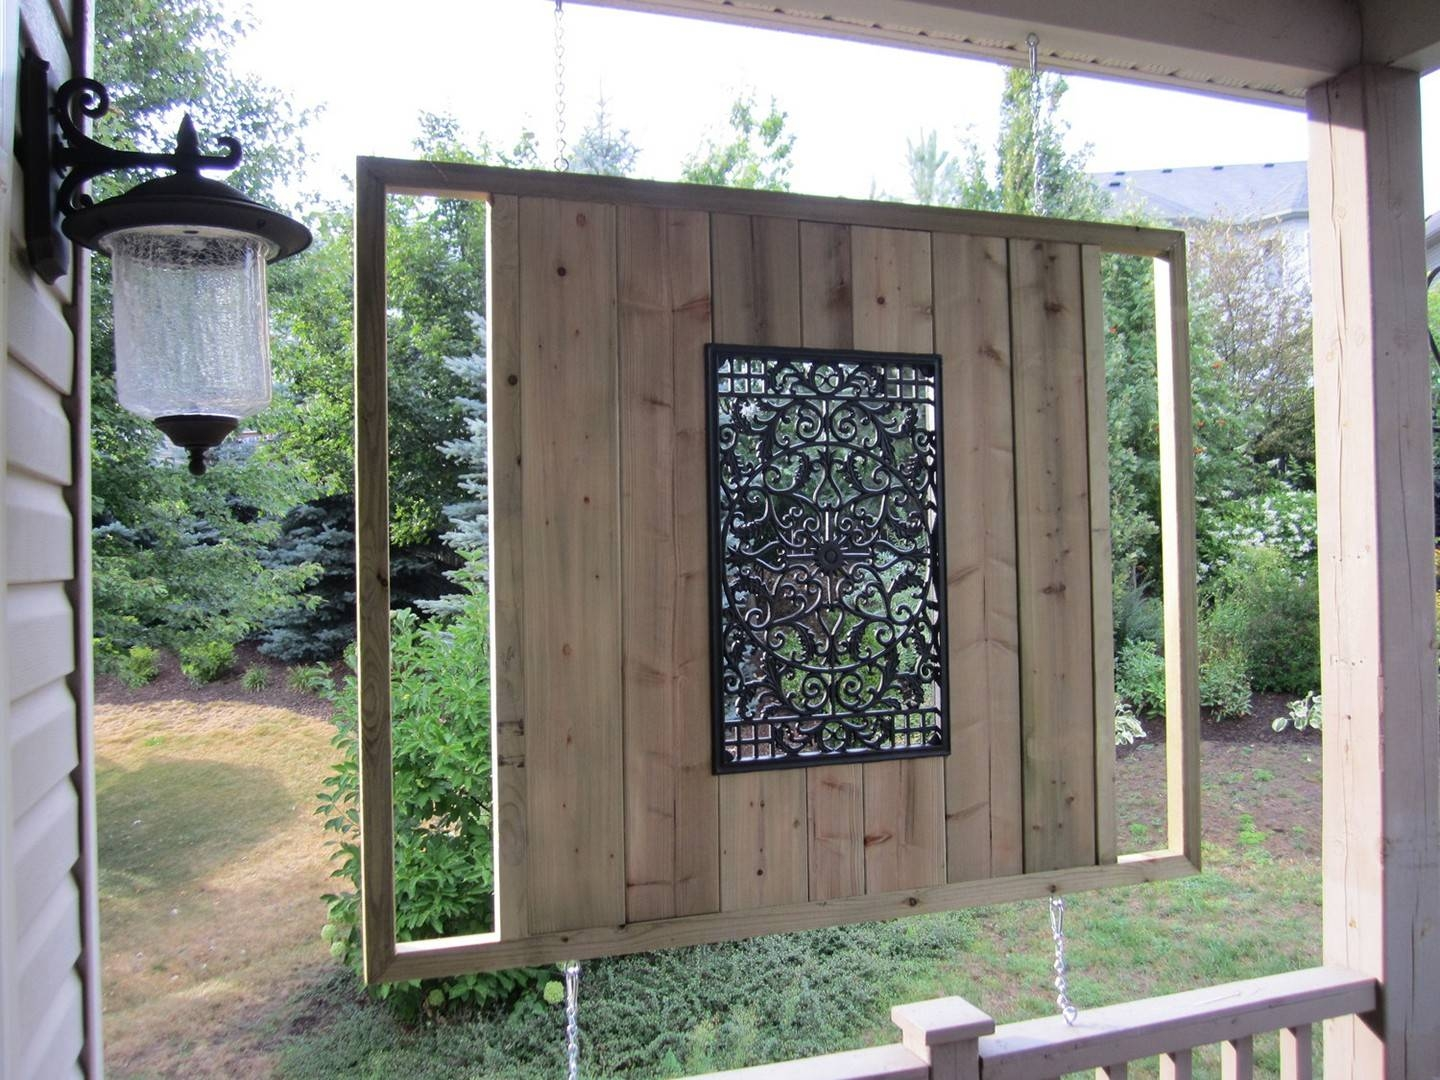 Exterior: Outdoor Wall Art With Wrought Iron Outdoor Decor And Pertaining To Most Recent Outdoor Metal Wall Art (View 18 of 20)